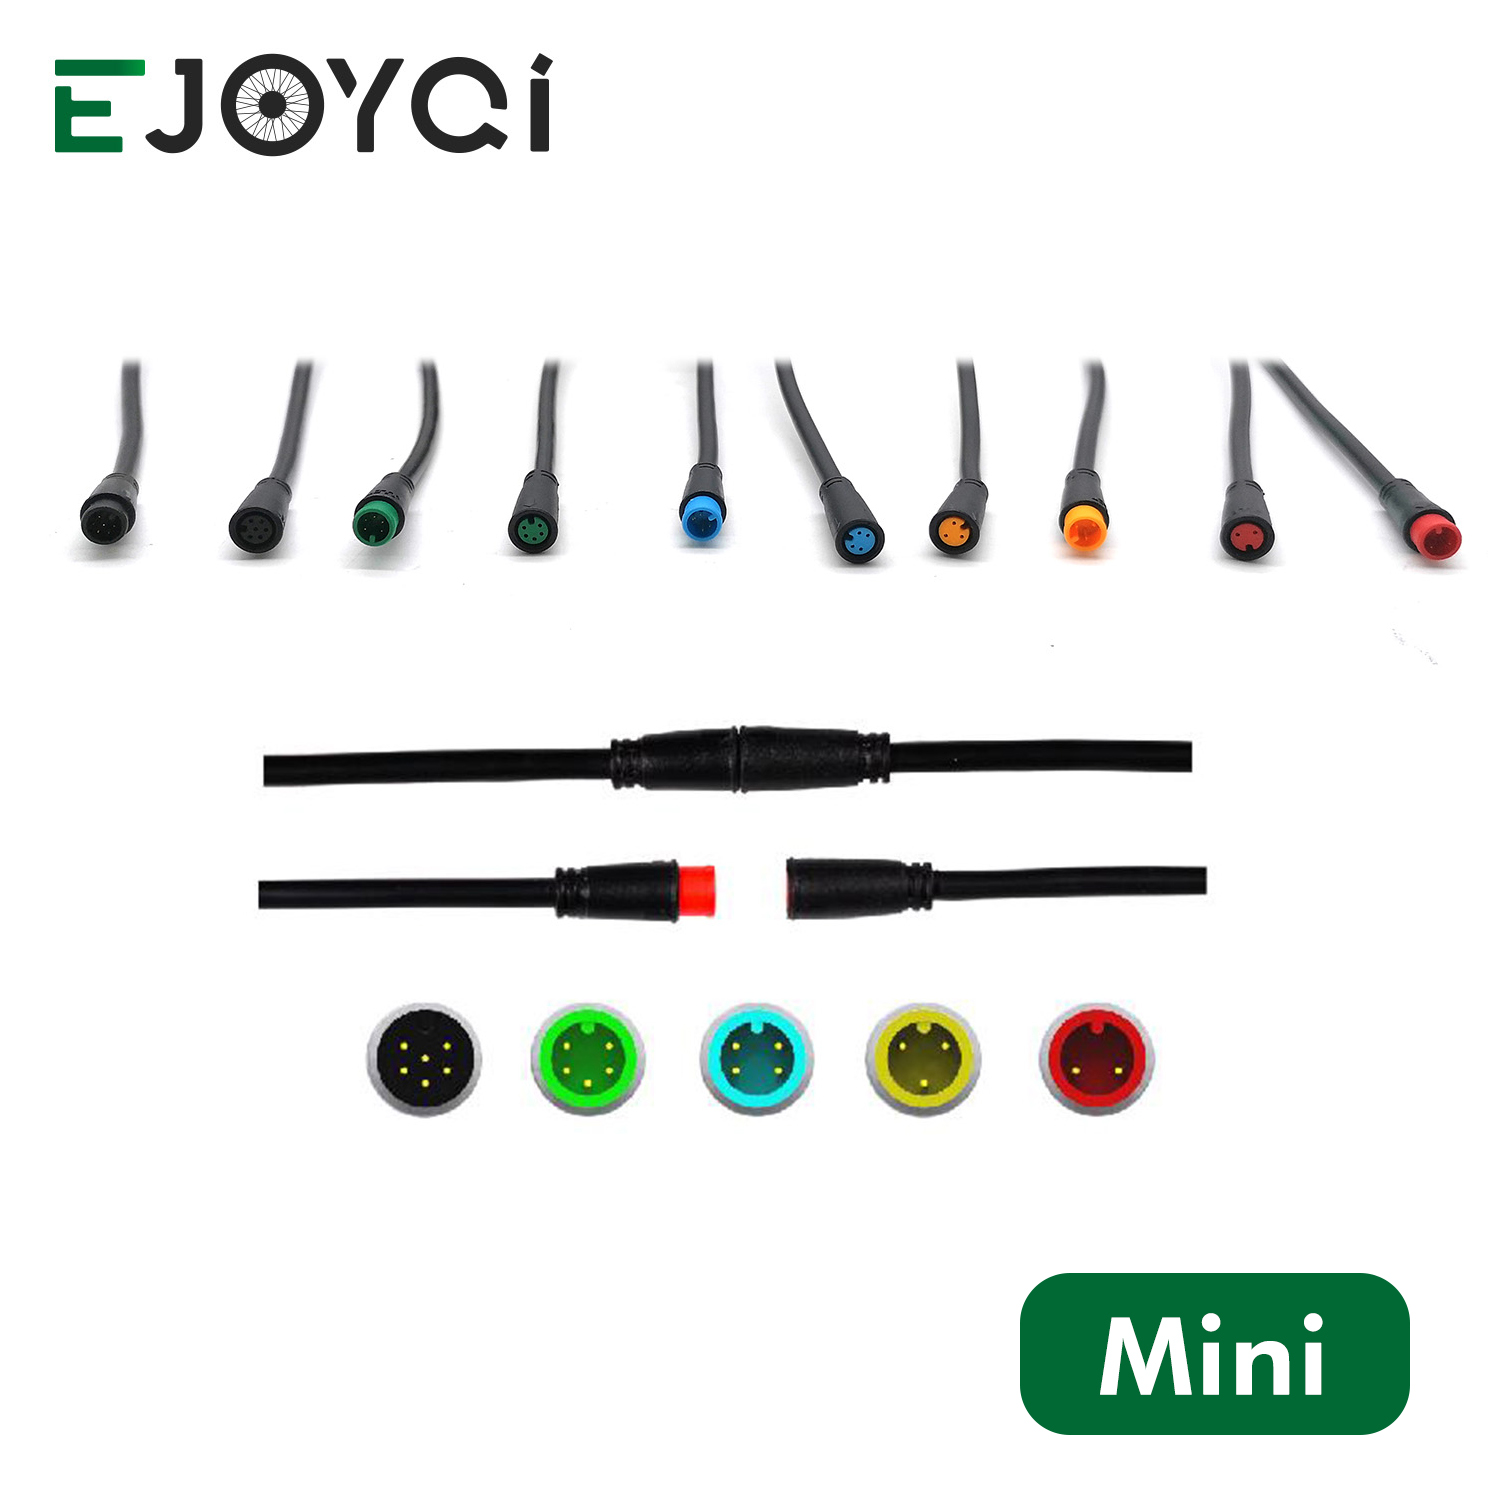 EJOYQI New Julet 2 3 4 5 6 Pin Waterproof Cable Connector Ebike Extension Cable For Ebike Light Throttle Ebrake Display